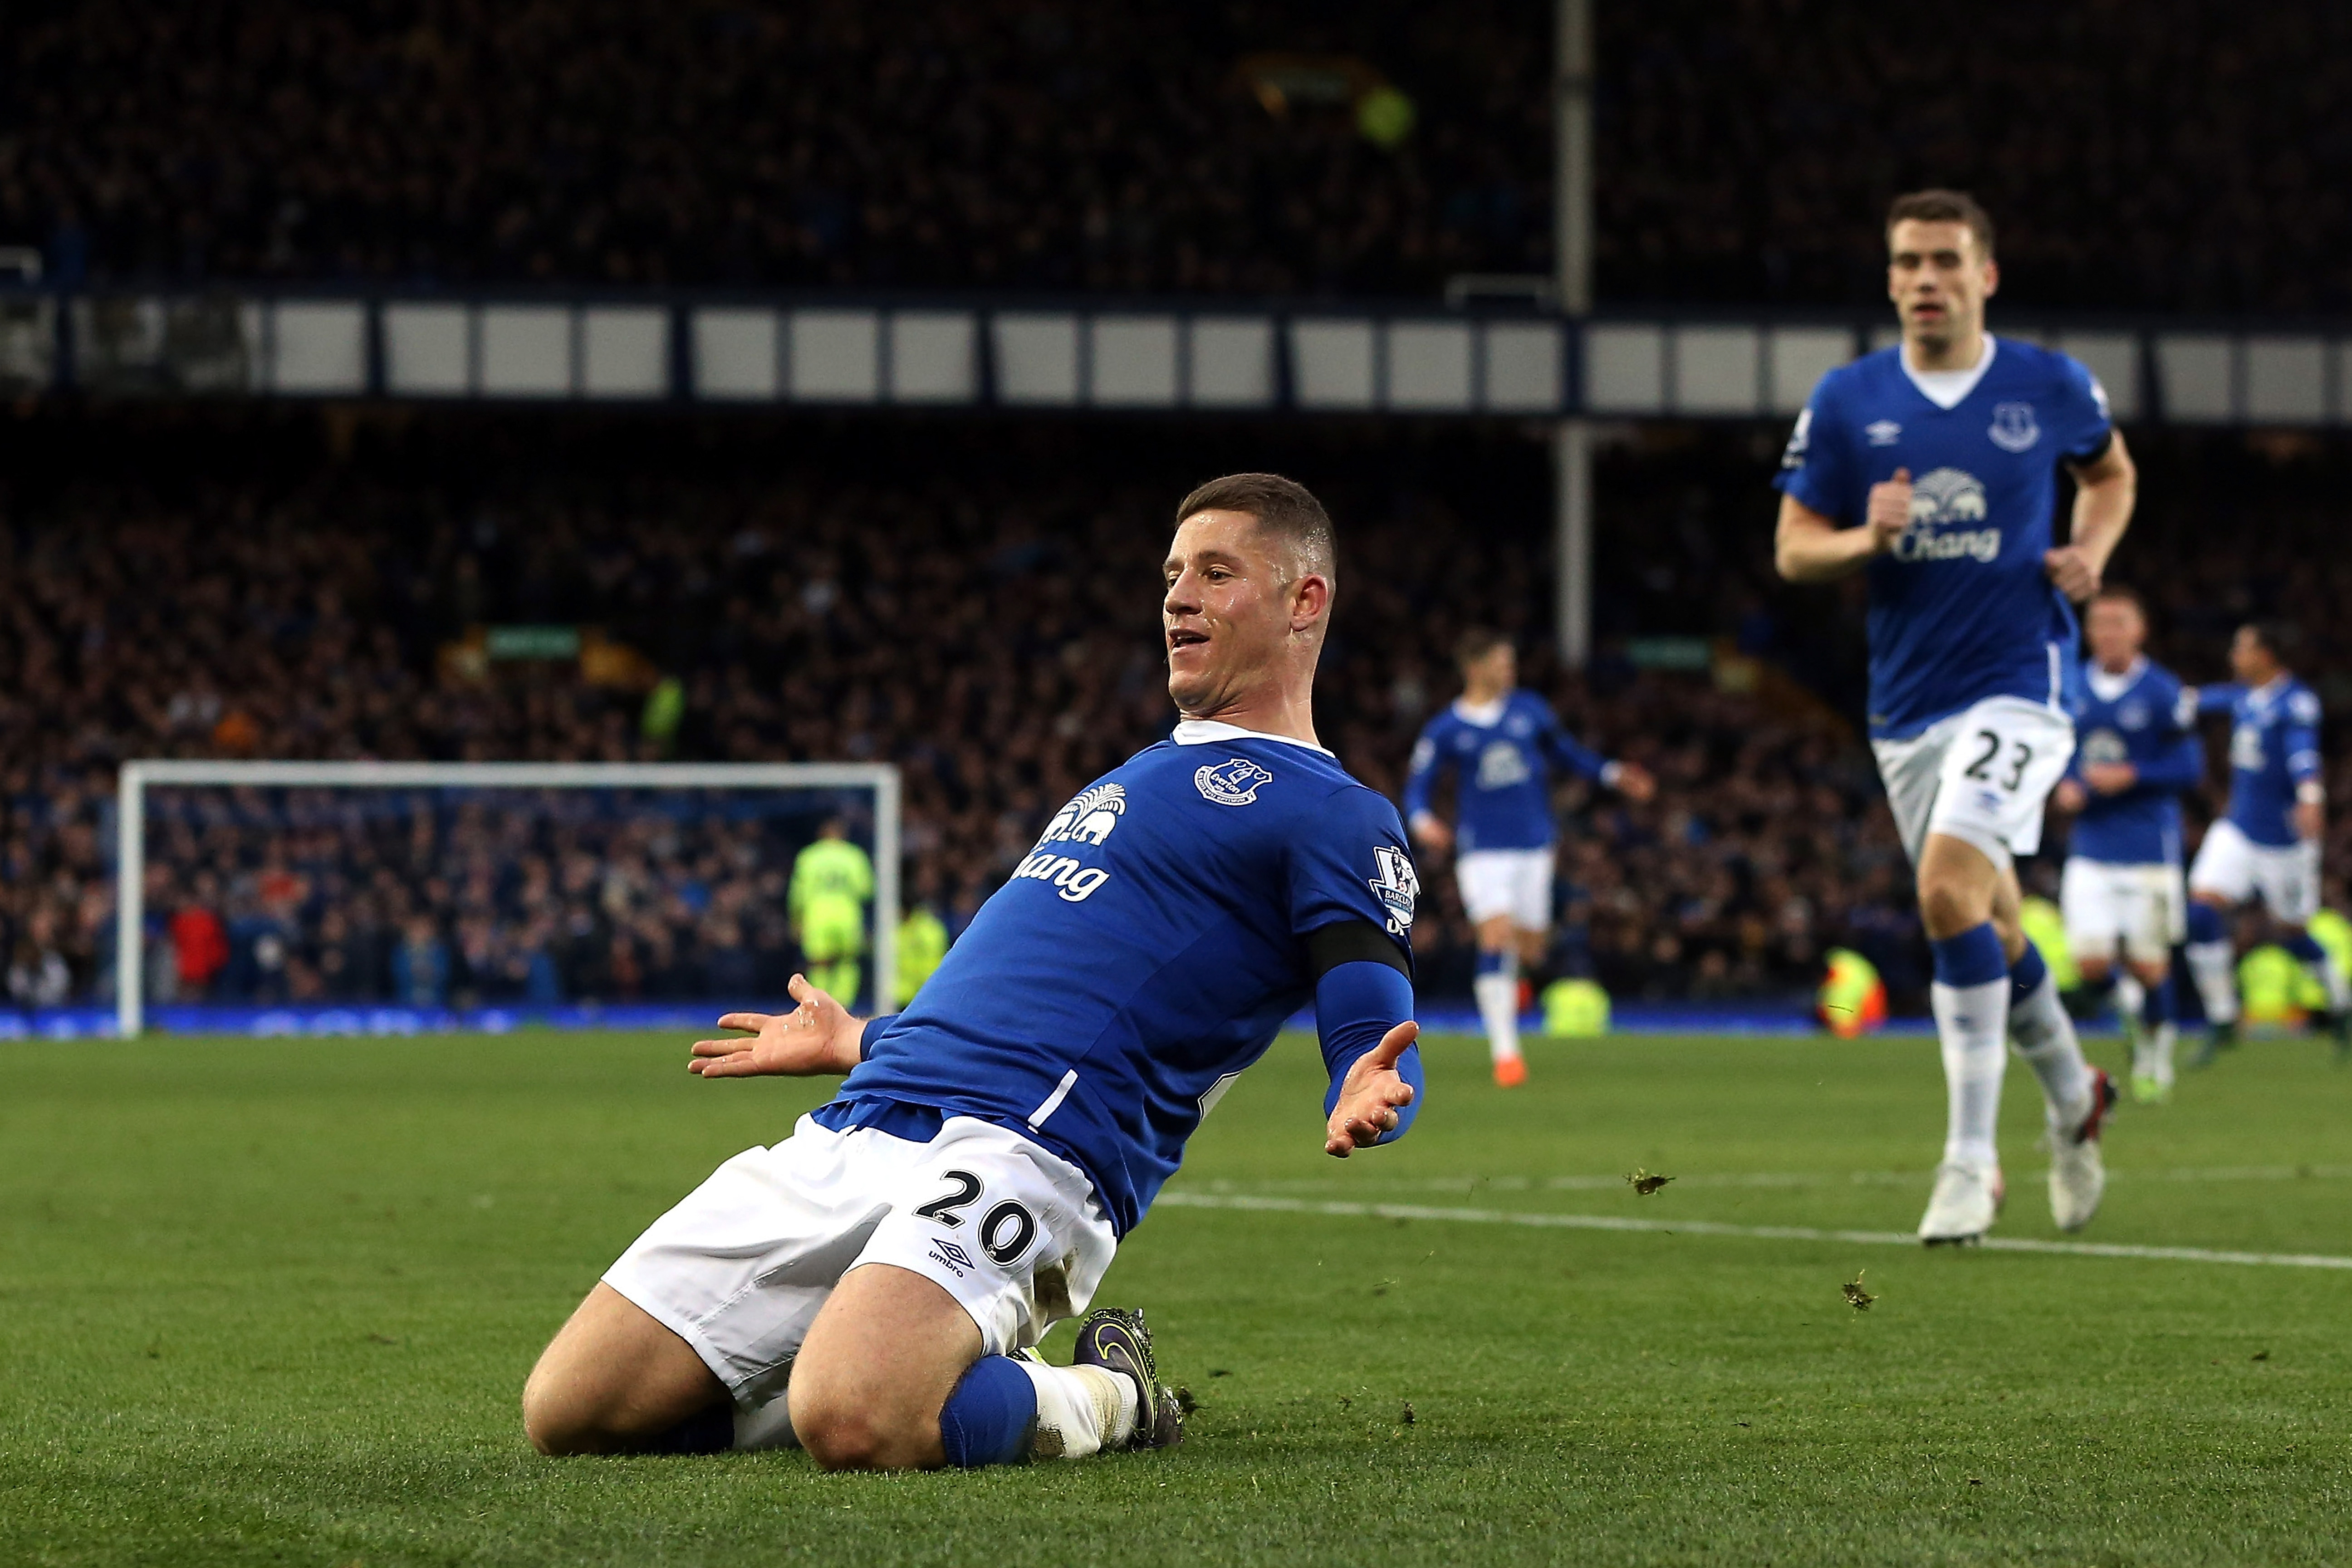 Barkley put in another in a long line of exceptional performances by Everton players this season.